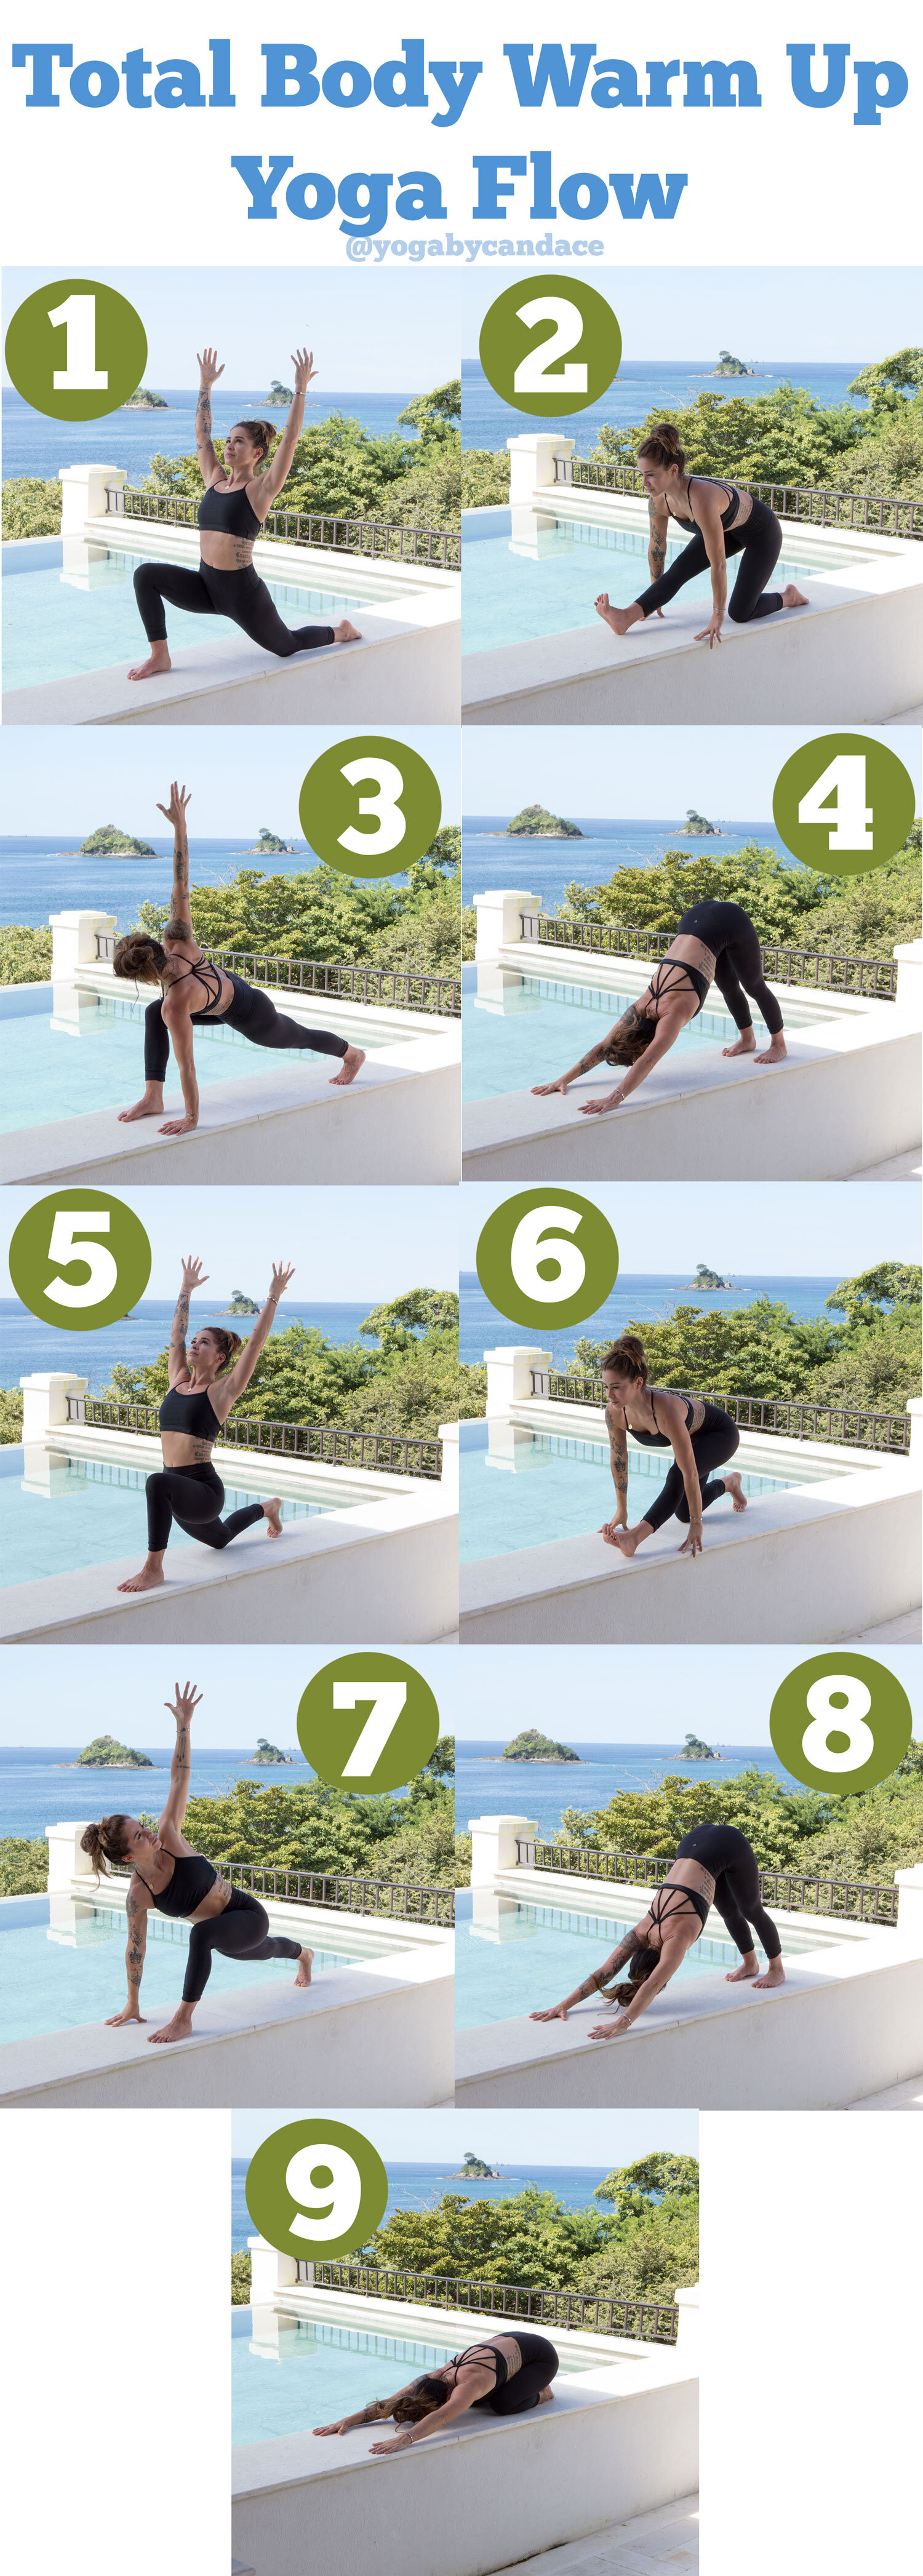 Follow us on Pinterest  and pin this yoga flow image now for practice later on!